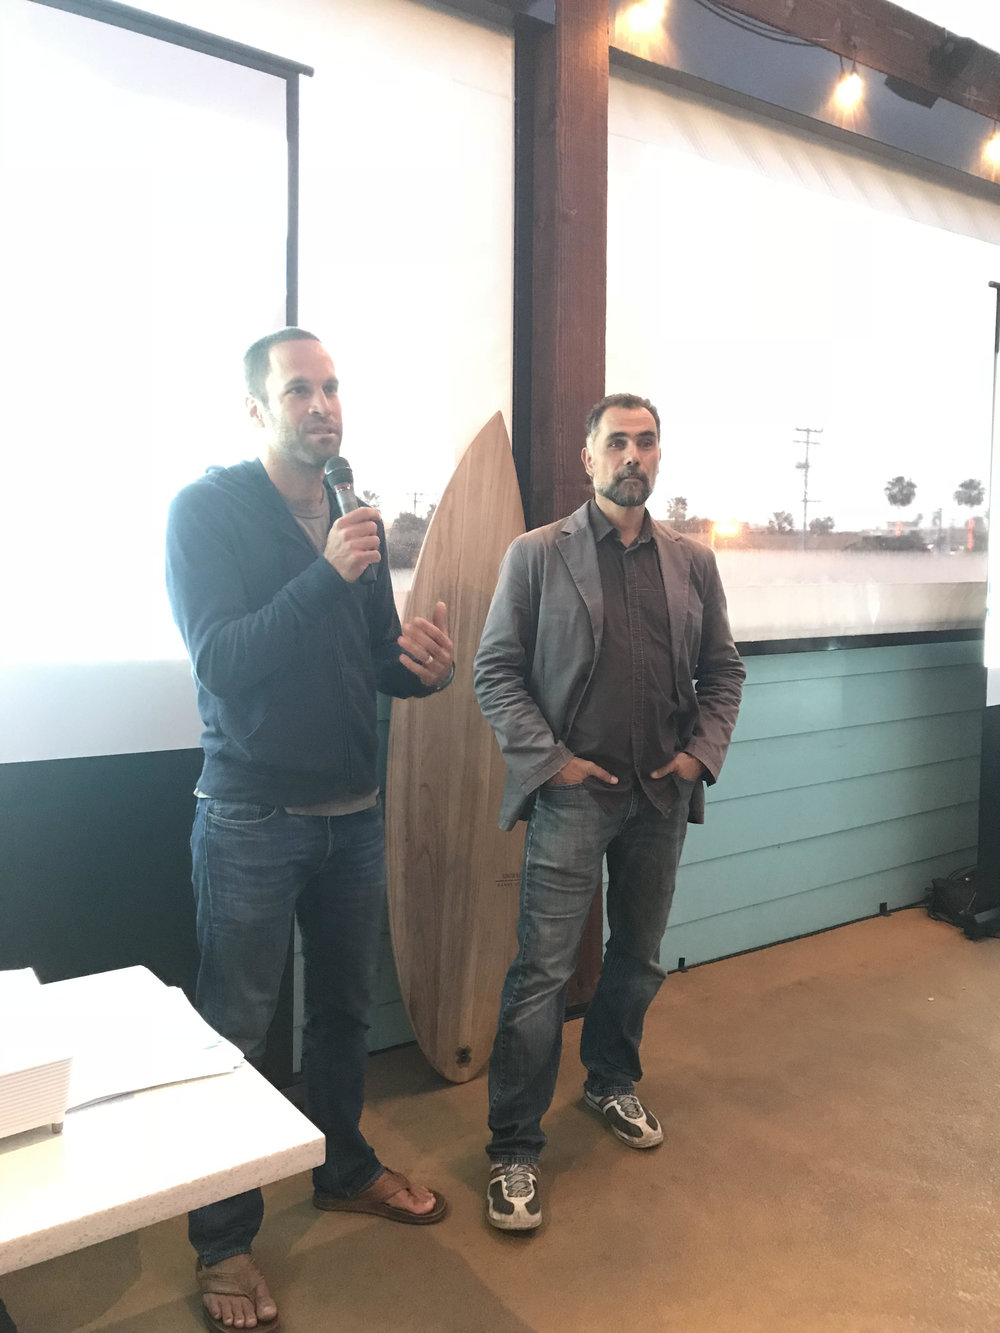 PPC Notable Member Jack Johnson and 5Gyres' Marcus Eriksen at the conference's 'Smog of the Sea' film screening.